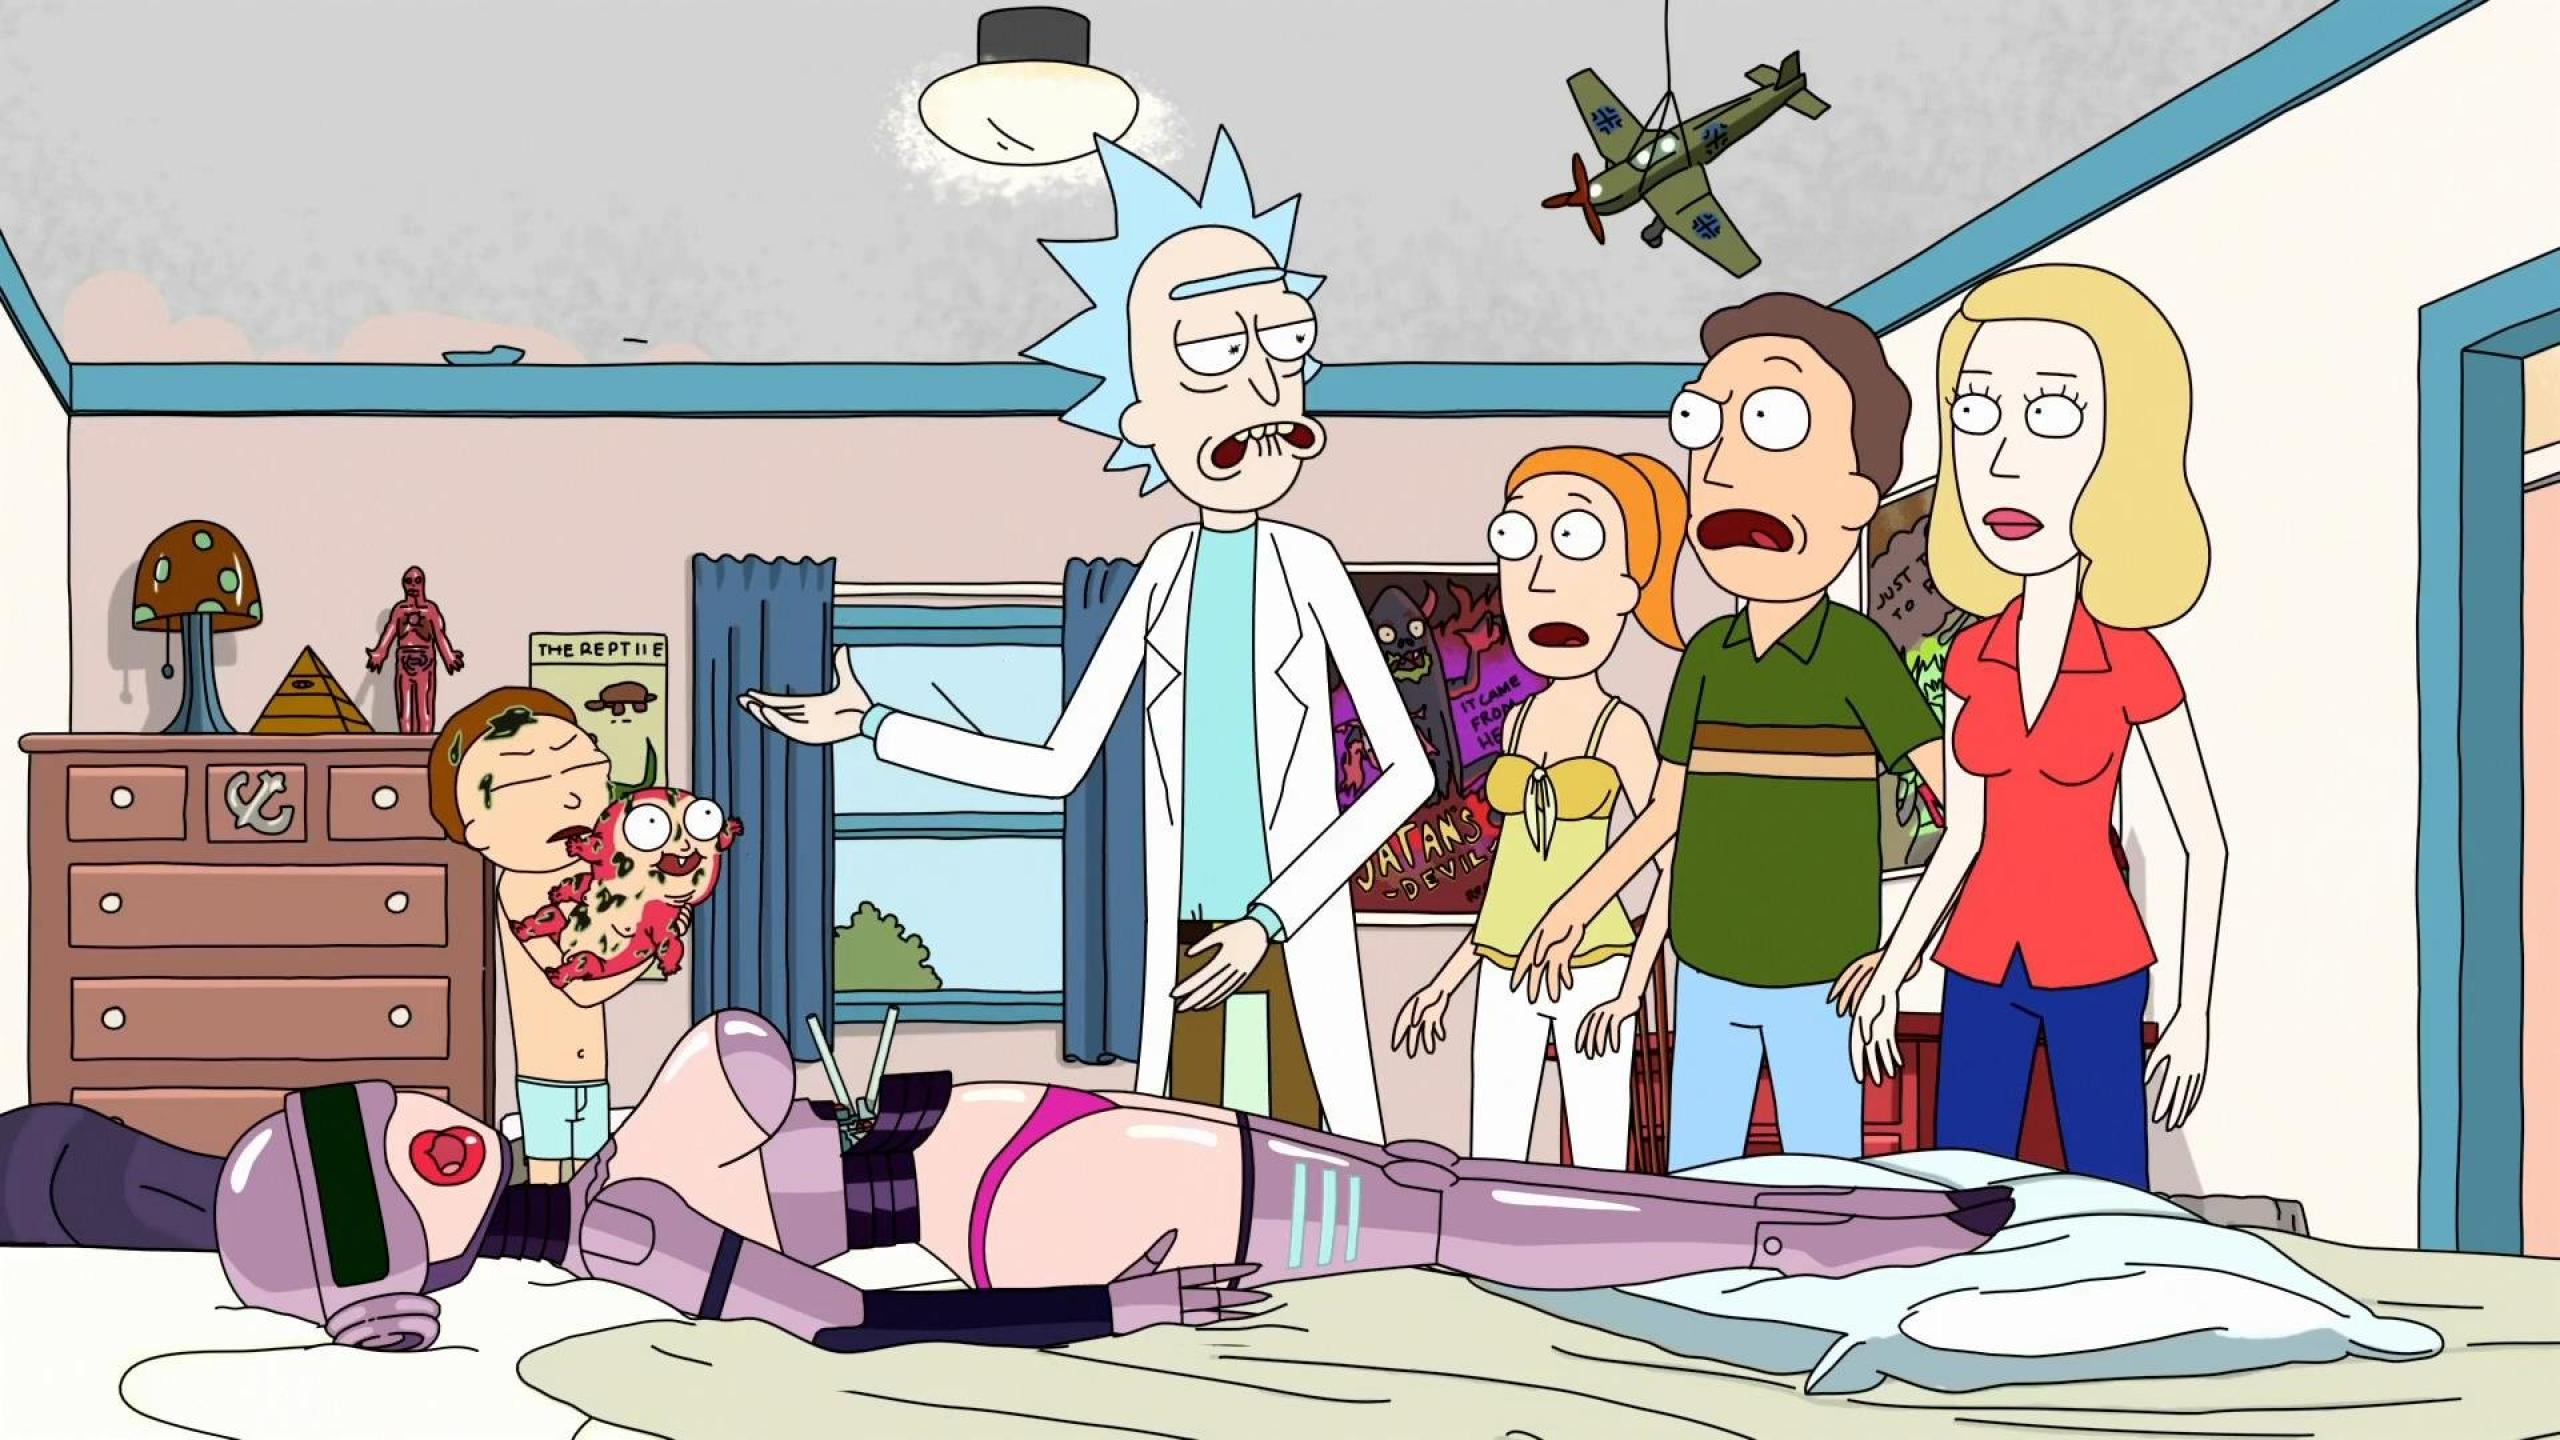 rick-and-morty-comedy-family-scifi-cartoon-4-wallpaper-1